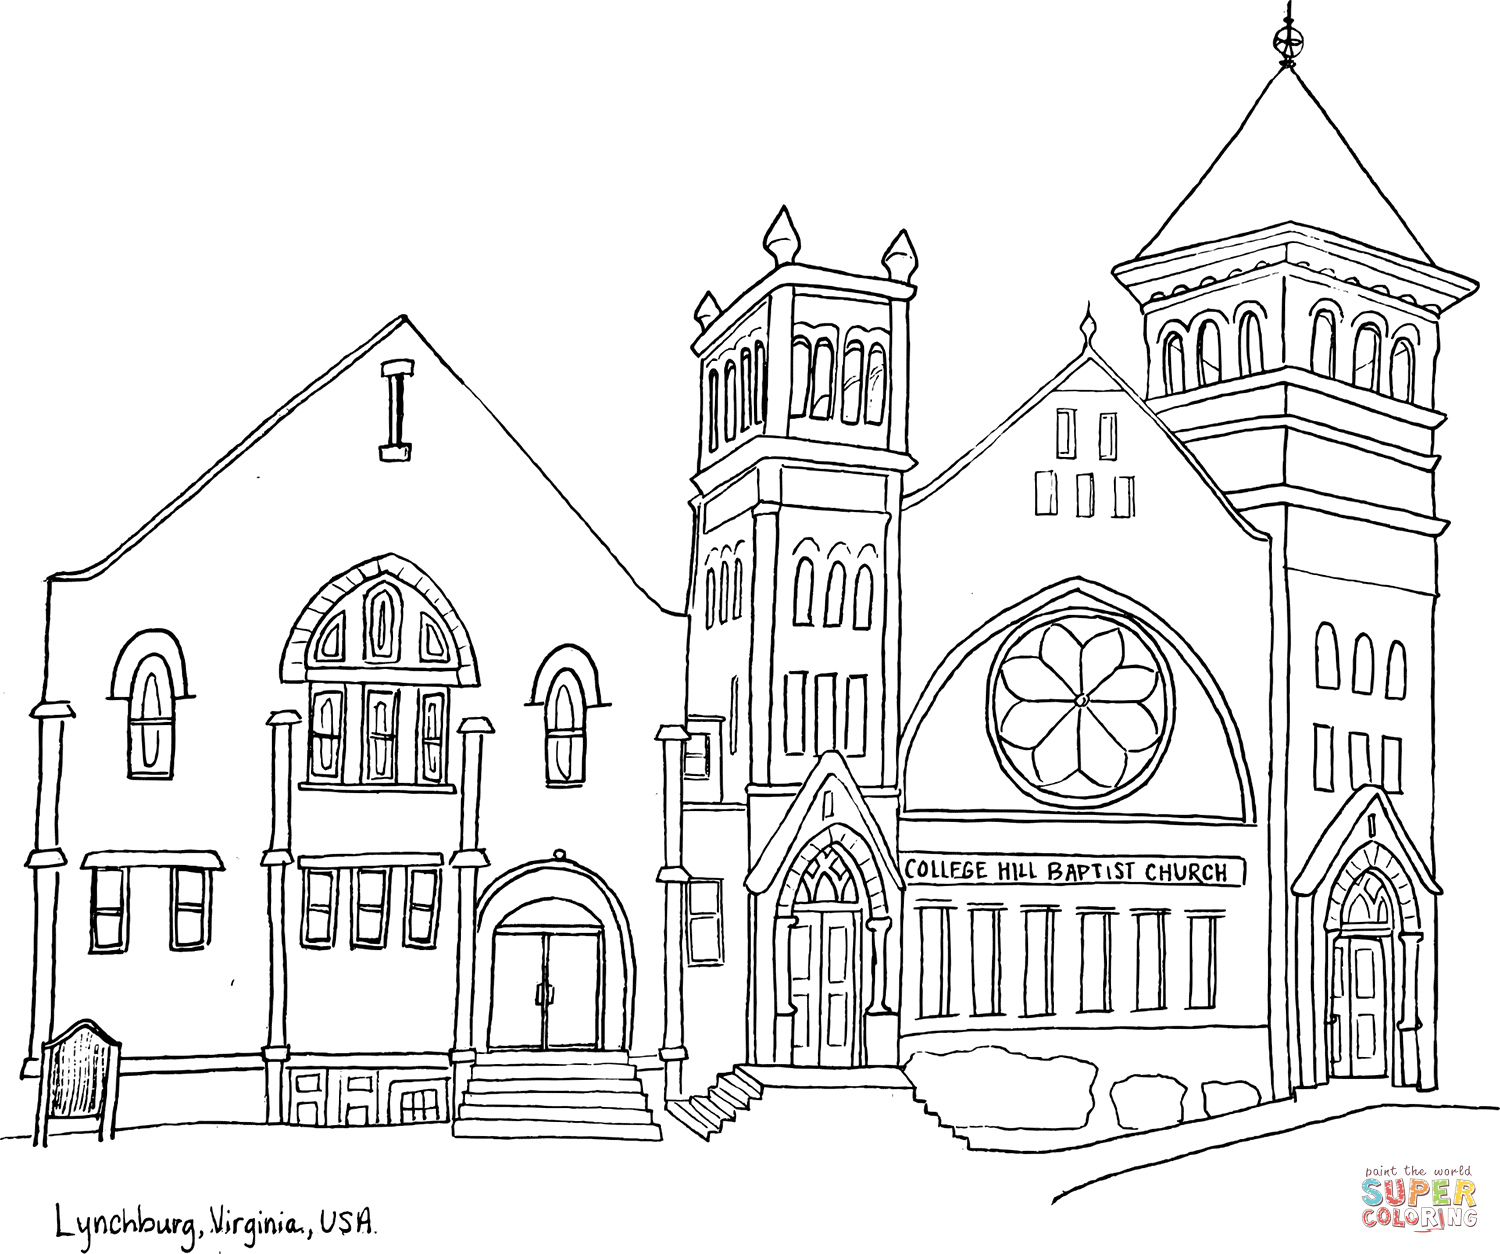 Building Coloring Page Coloring Ideas Building Coloring Sheets College Hill Baptist